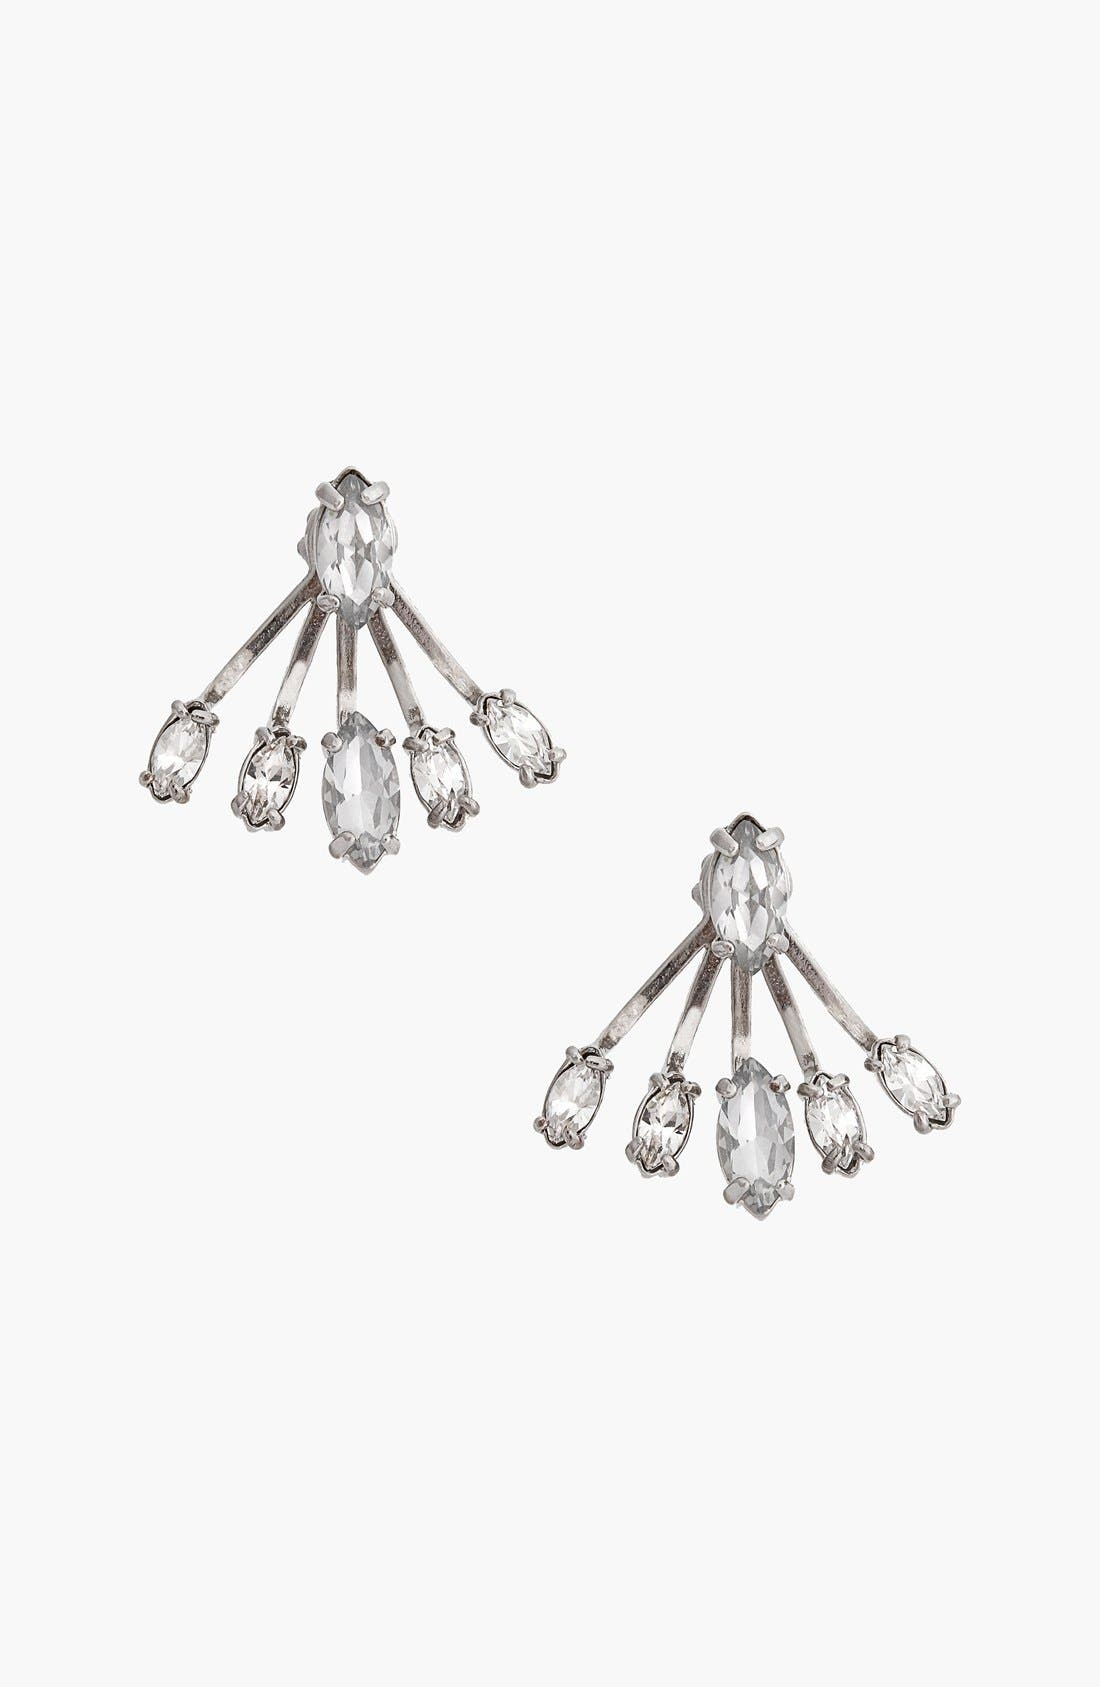 REBECCA MINKOFF, Crystal Ear Jackets, Main thumbnail 1, color, 040